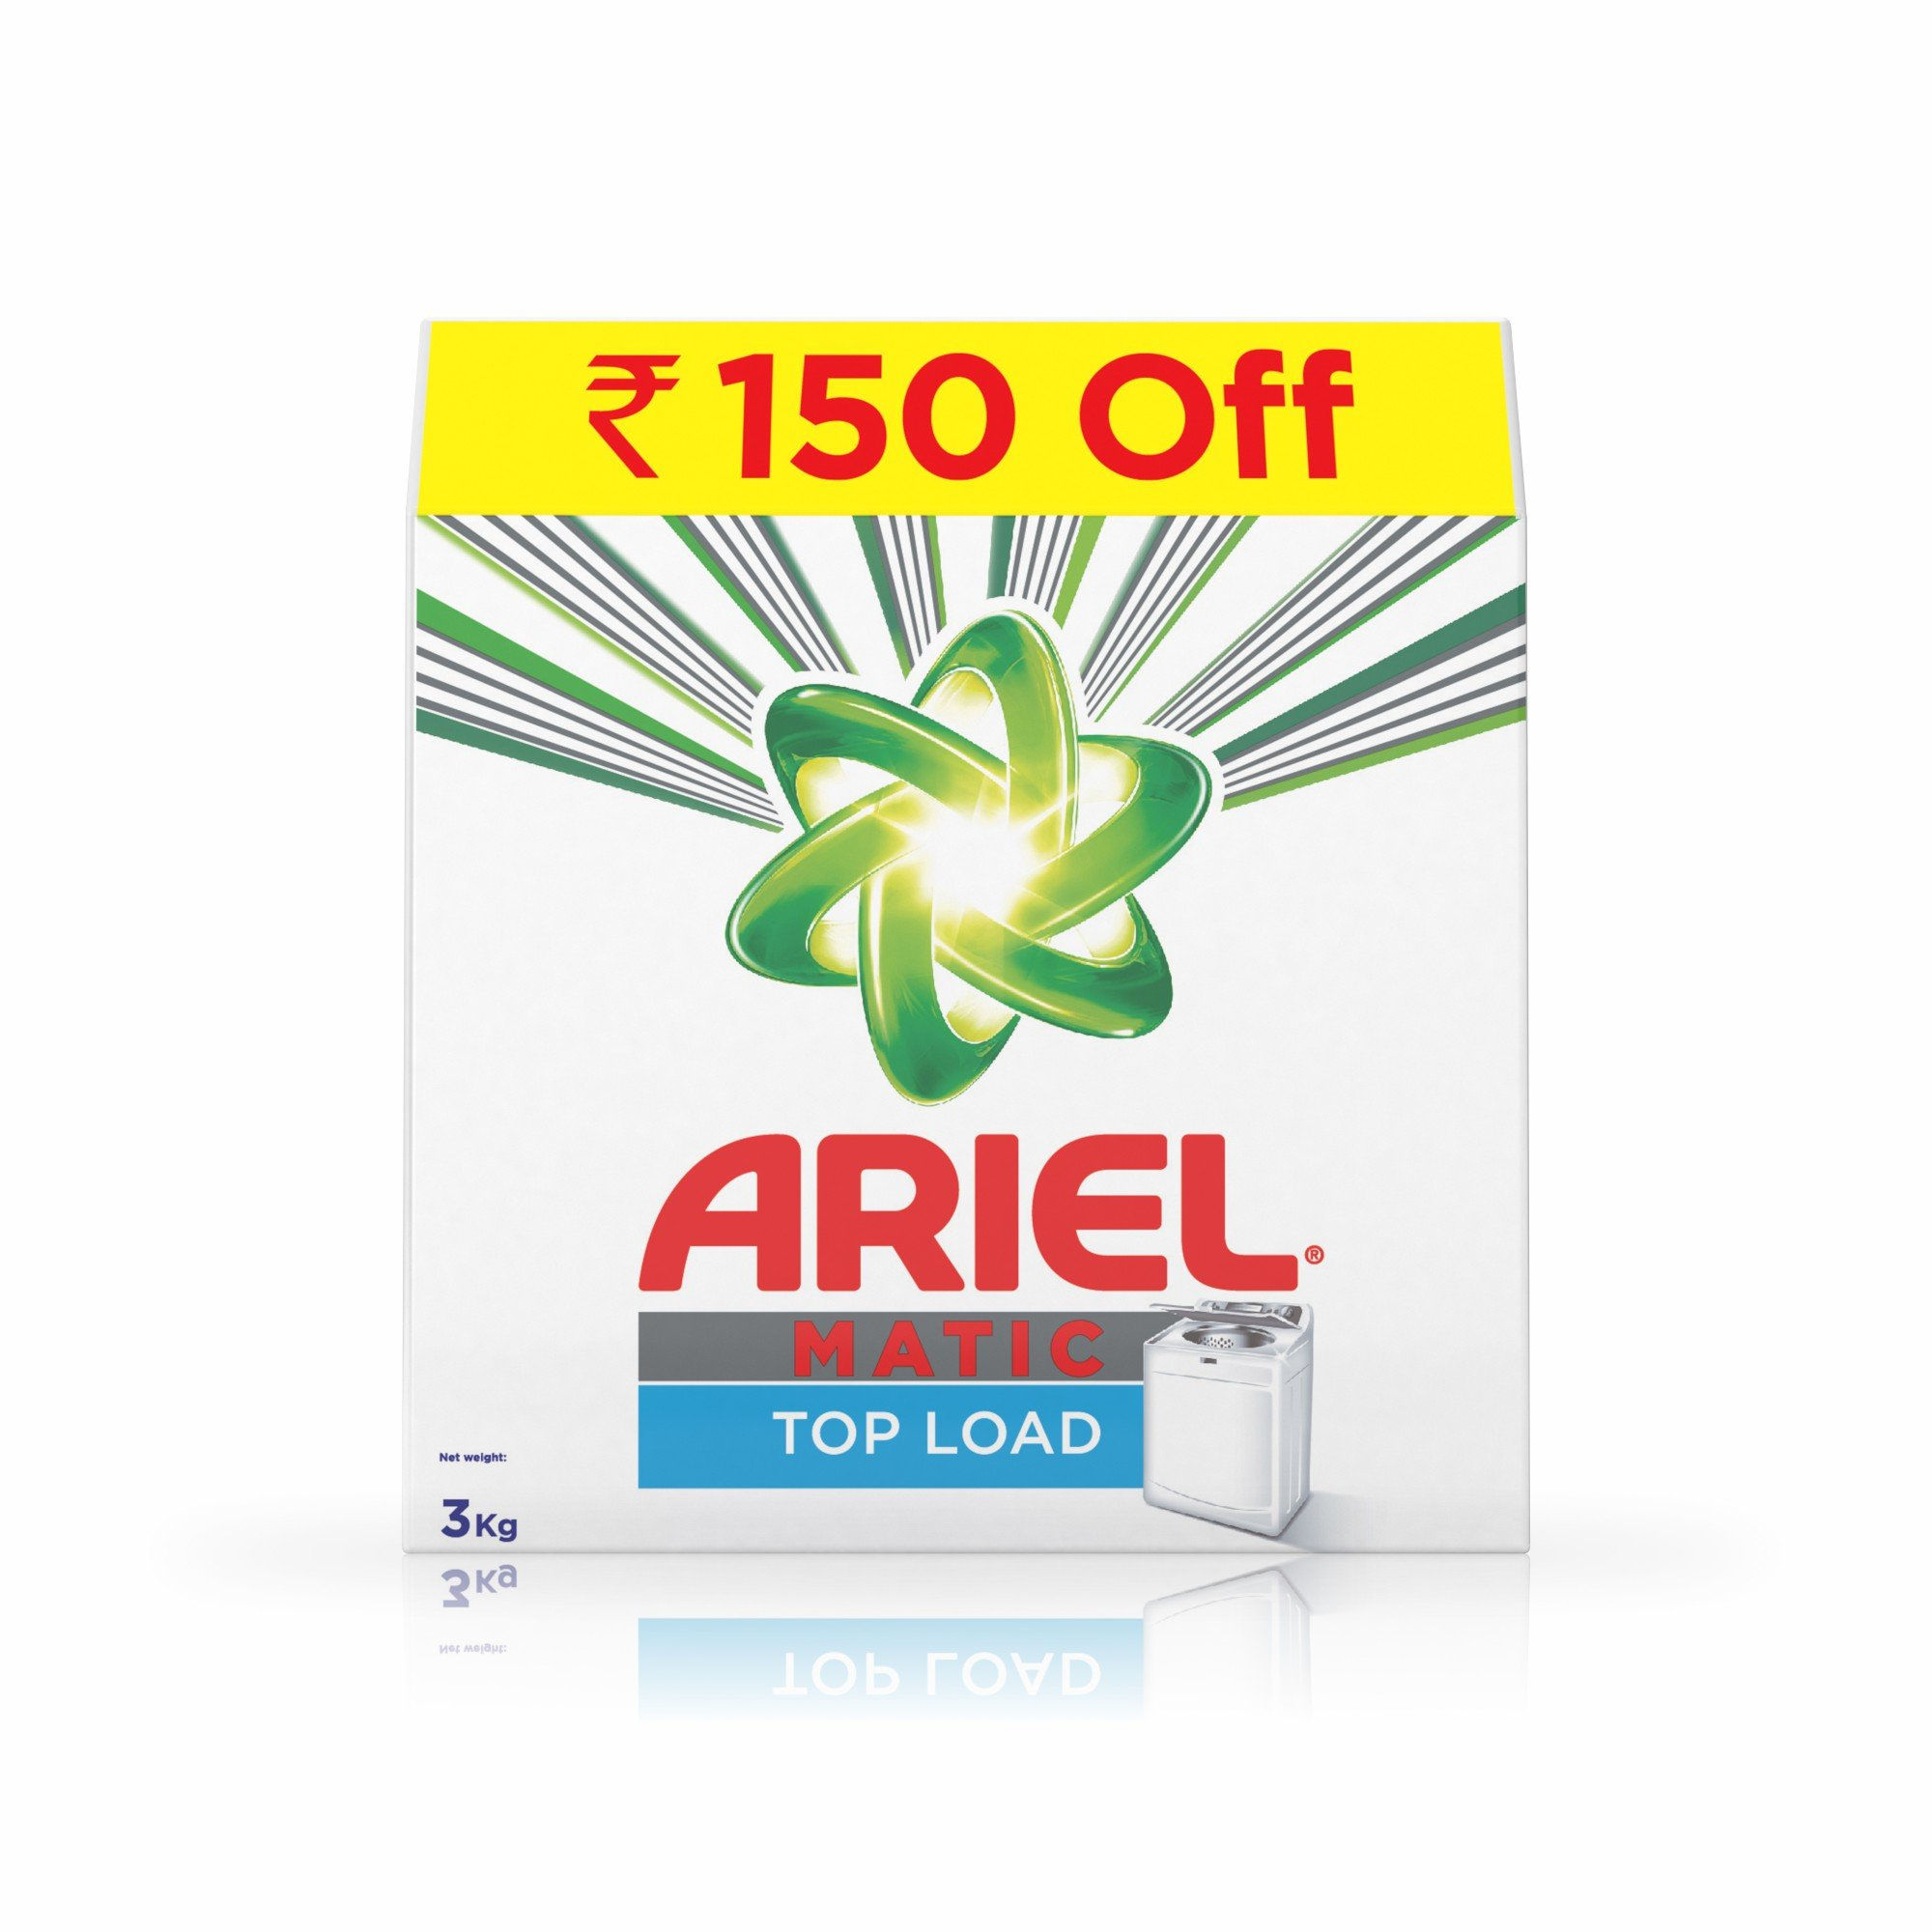 Ariel Matic Top Load Detergent Washing Powder - 3 kg (Rupees 150 Off) product image